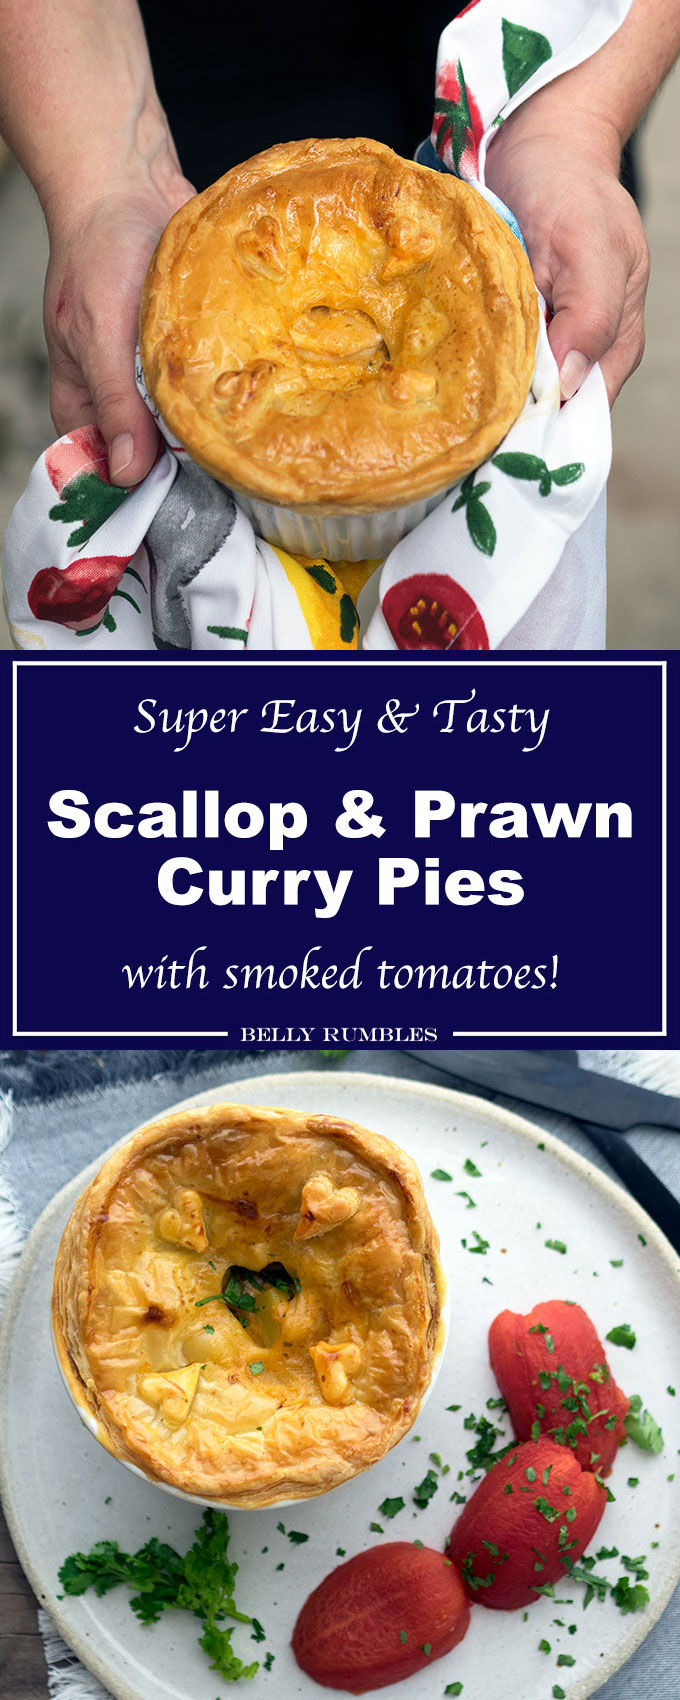 Easy Scallop And Prawn Curry Pies With Smoked Tomatoes Belly Rumbles